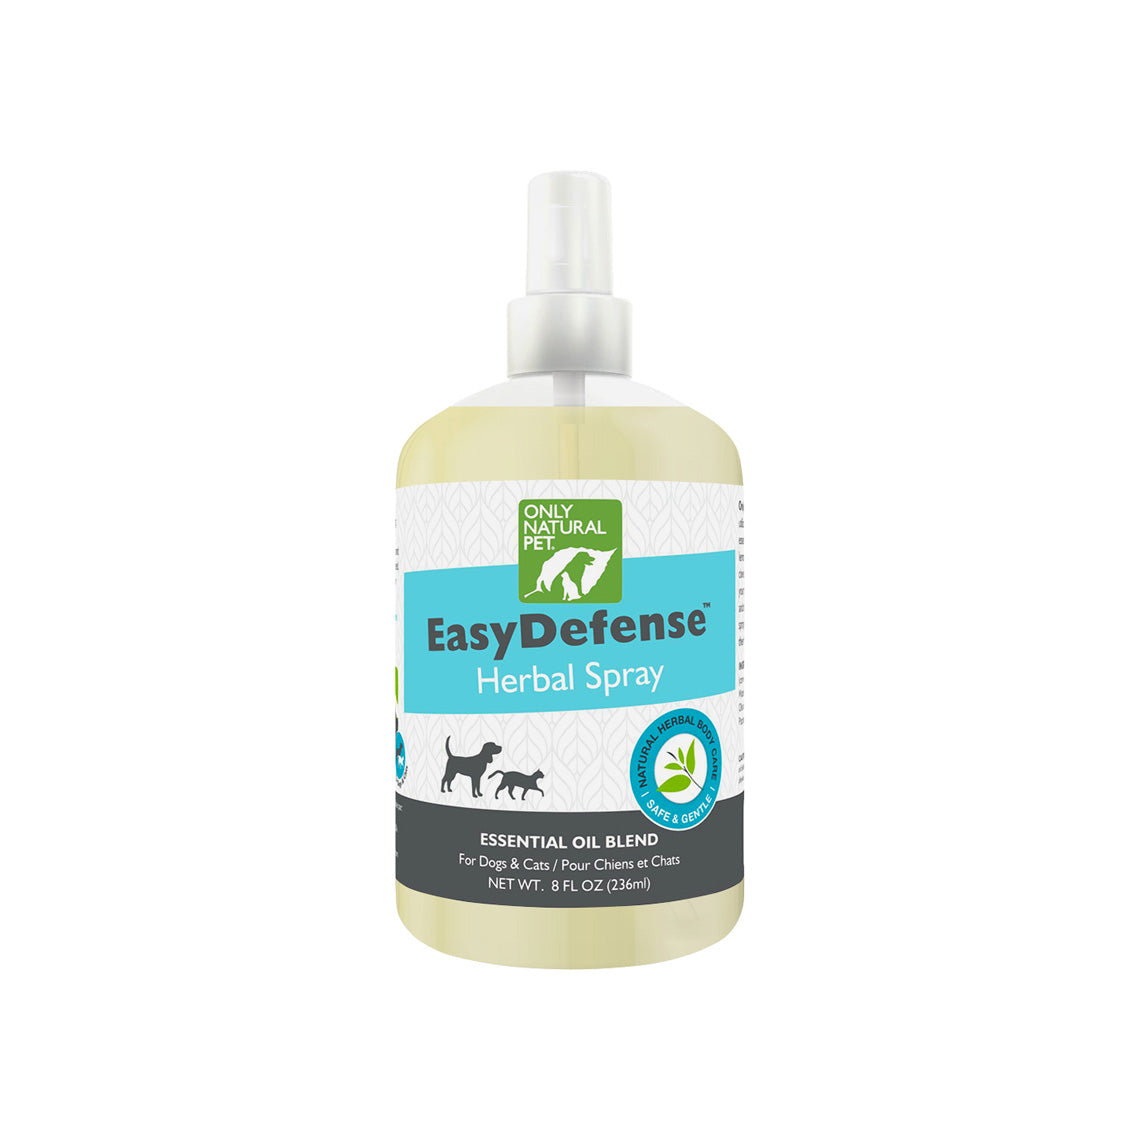 Only Natural Pet Easydefense Herbal Essential Oil Flea Tick Spray Fo